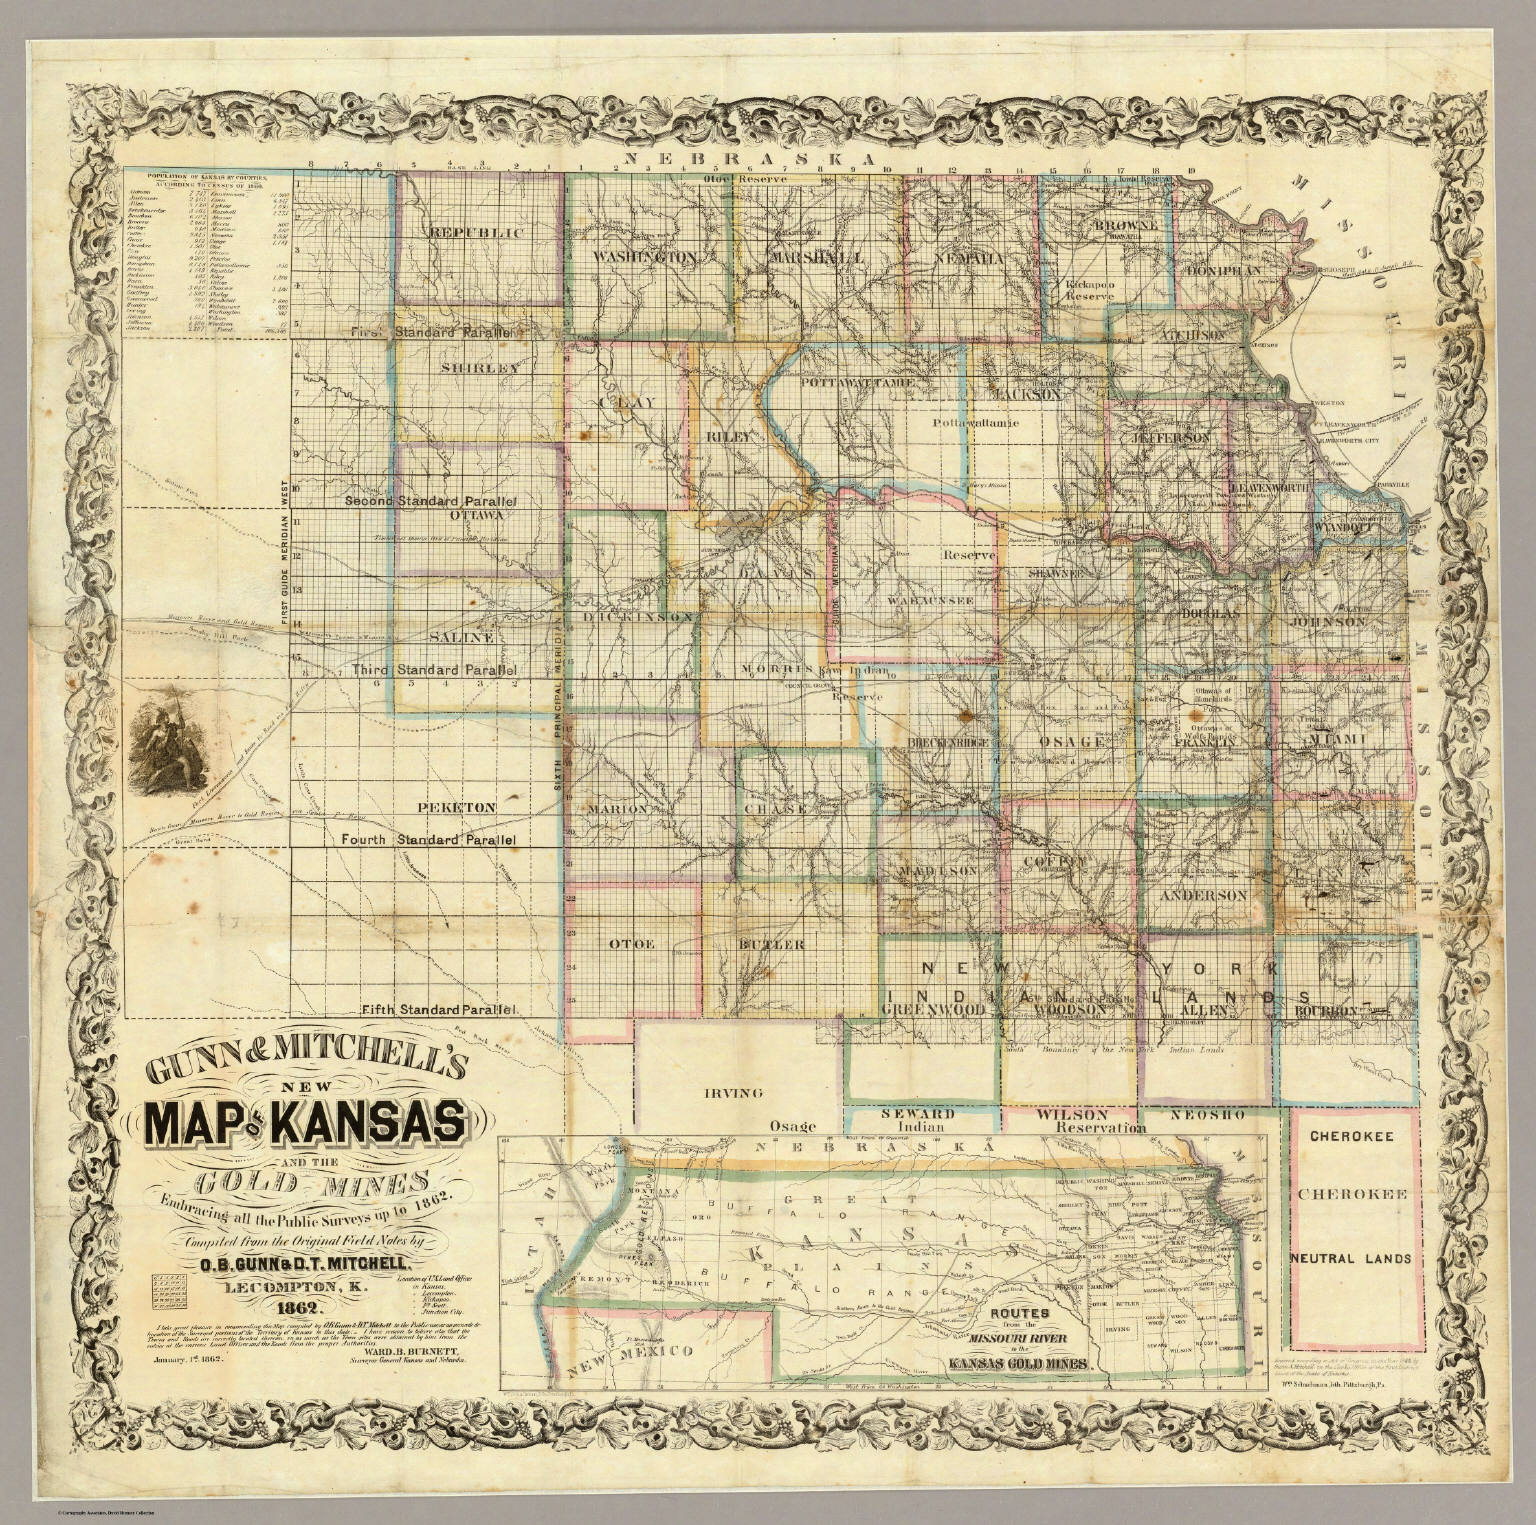 Kansas and the gold mines david rumsey historical map collection kansas and the gold mines publicscrutiny Choice Image